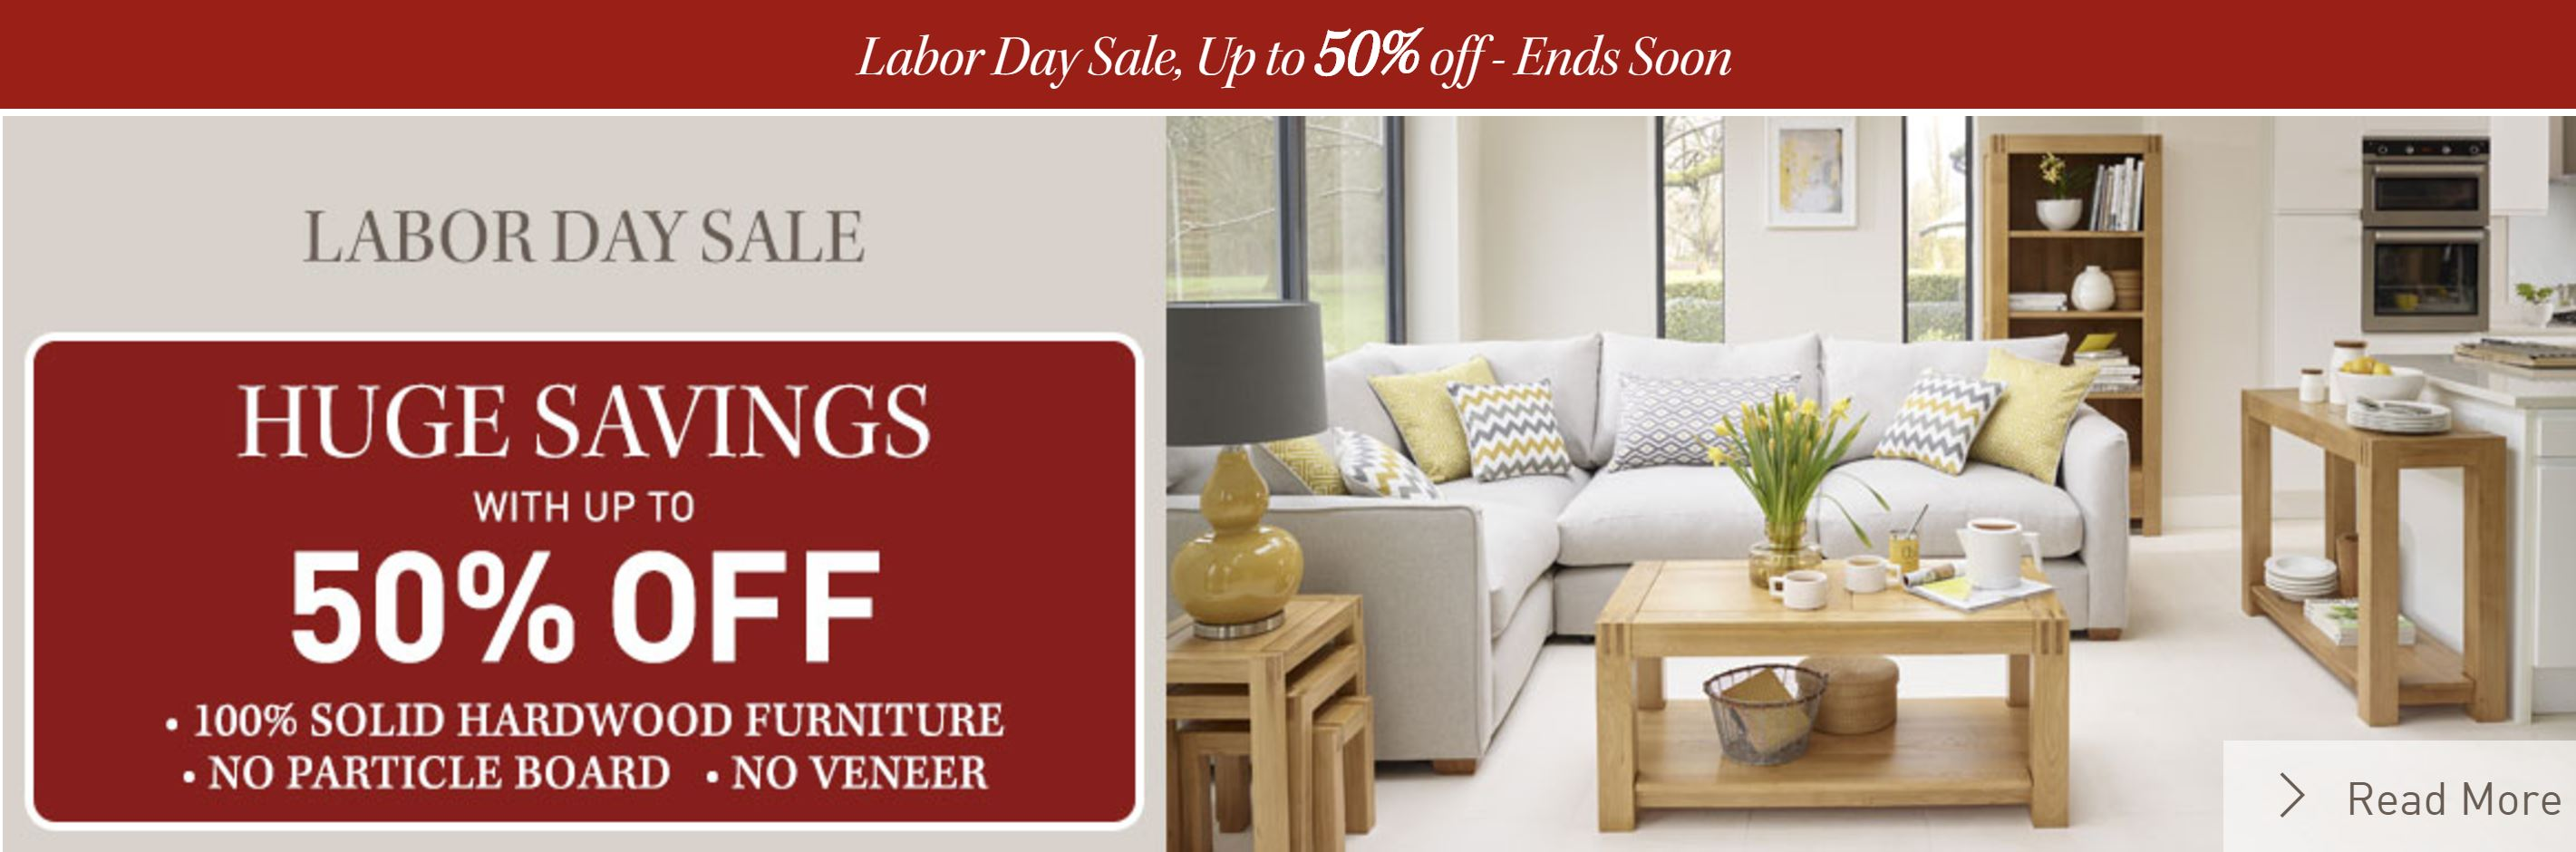 Top 5 Labor Day Sales For Home Big Appliances Must Have Furniture